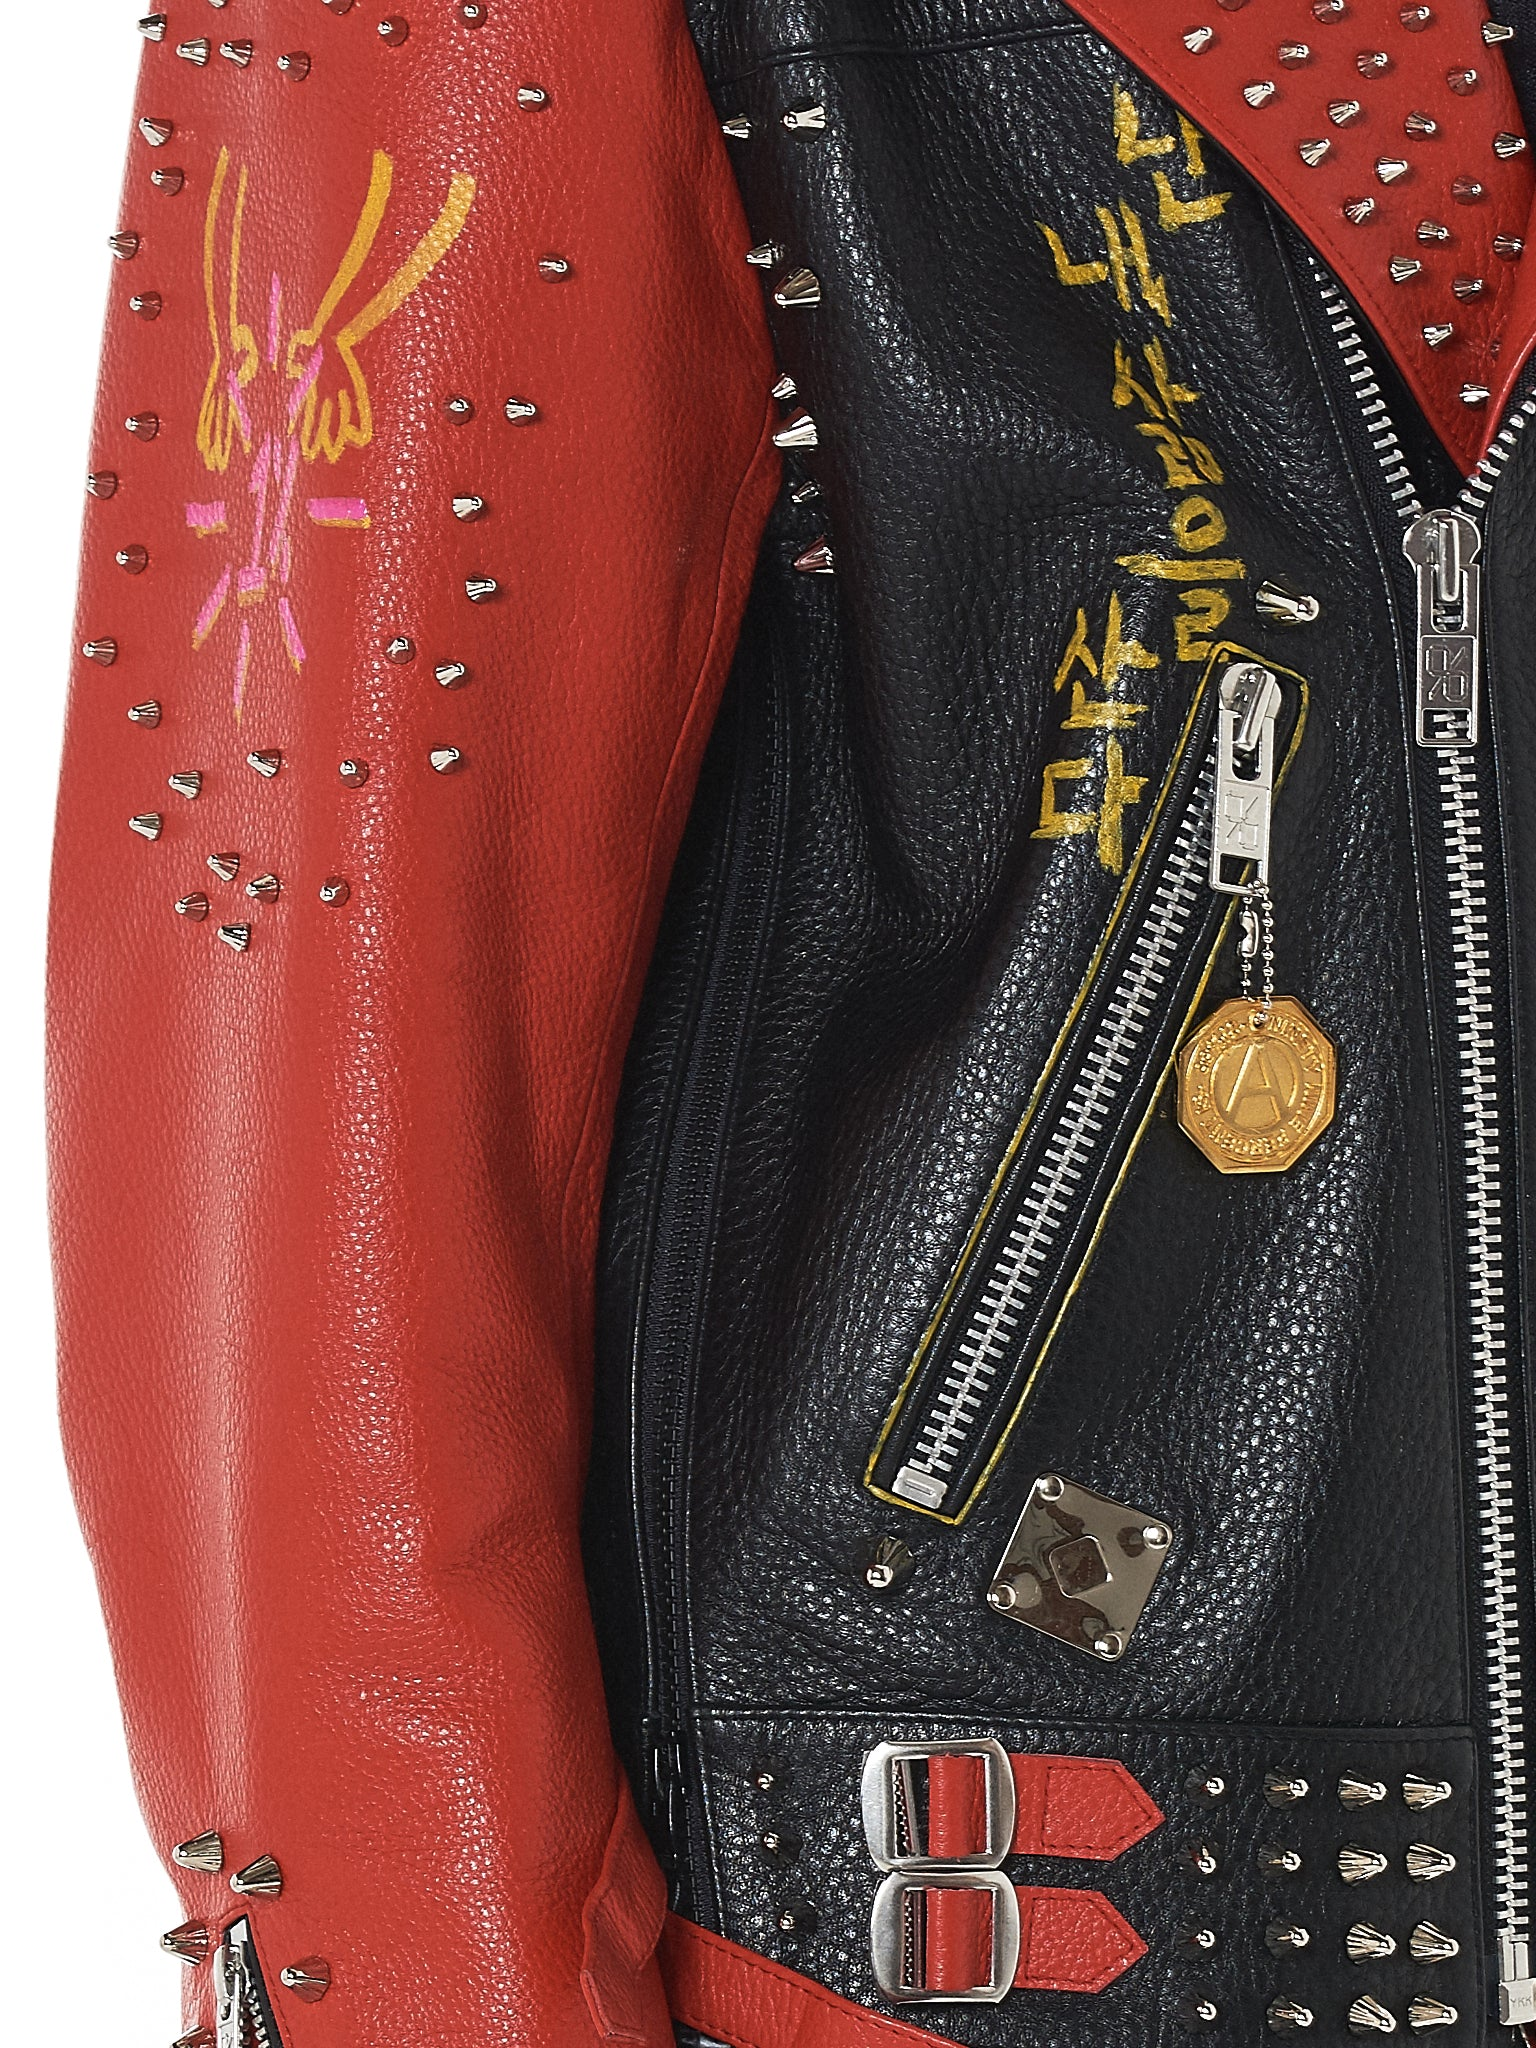 99%IS Studded Dualtone Biker Jacket - Hlorenzo Detail 5